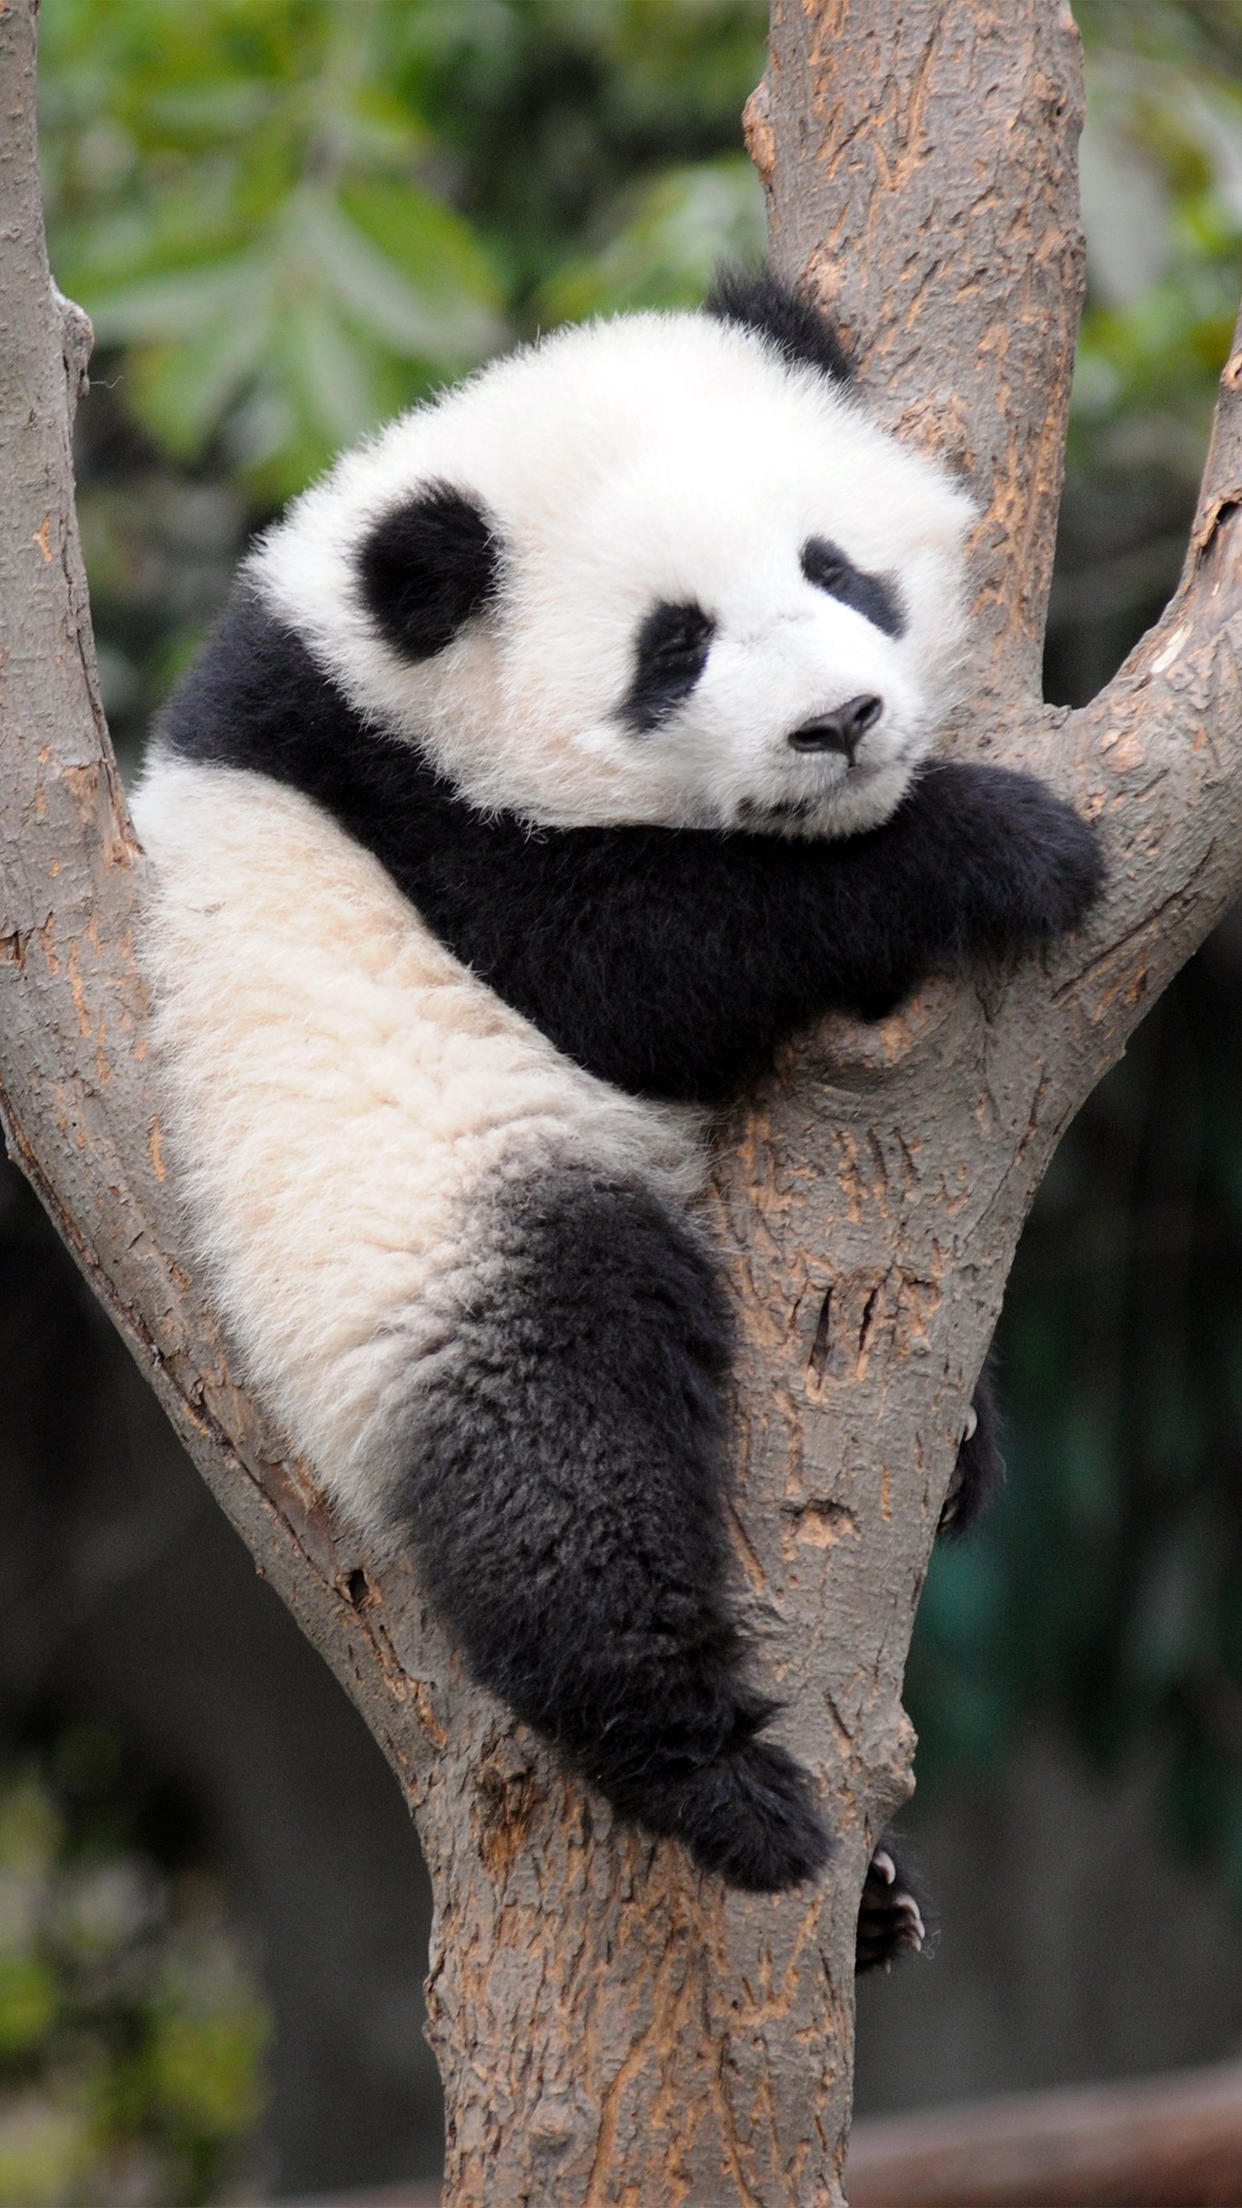 Panda sleeping Wallpaper for iPhone X, 8, 7, 6 - Free Download on 3Wallpapers